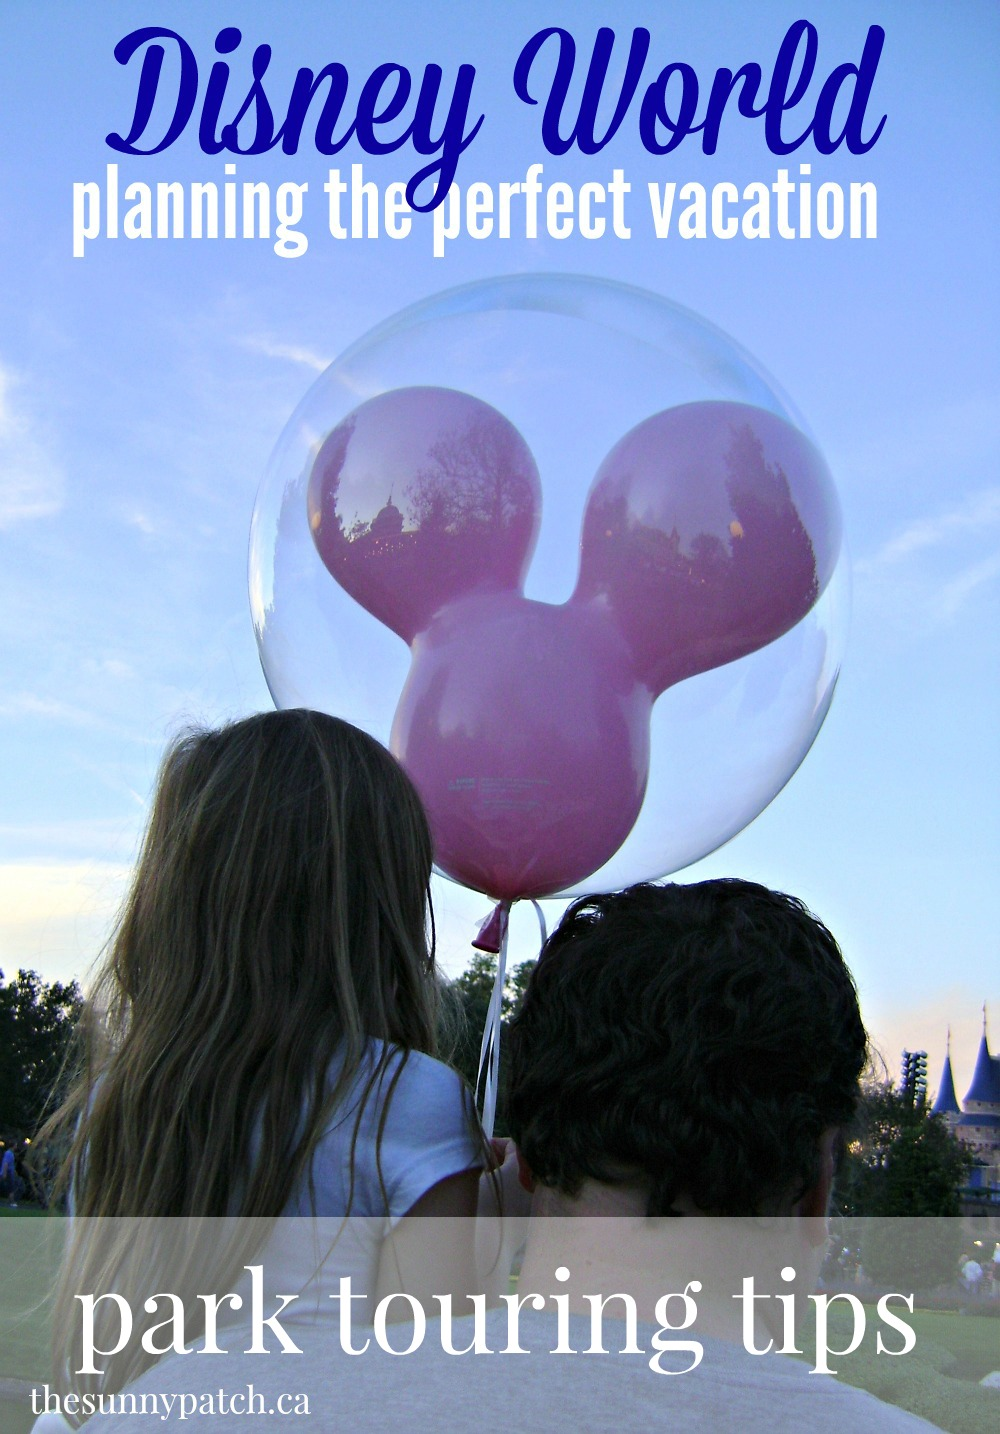 Planning a Disney World vacation? You'll want to read this series - full of great tips & advice!